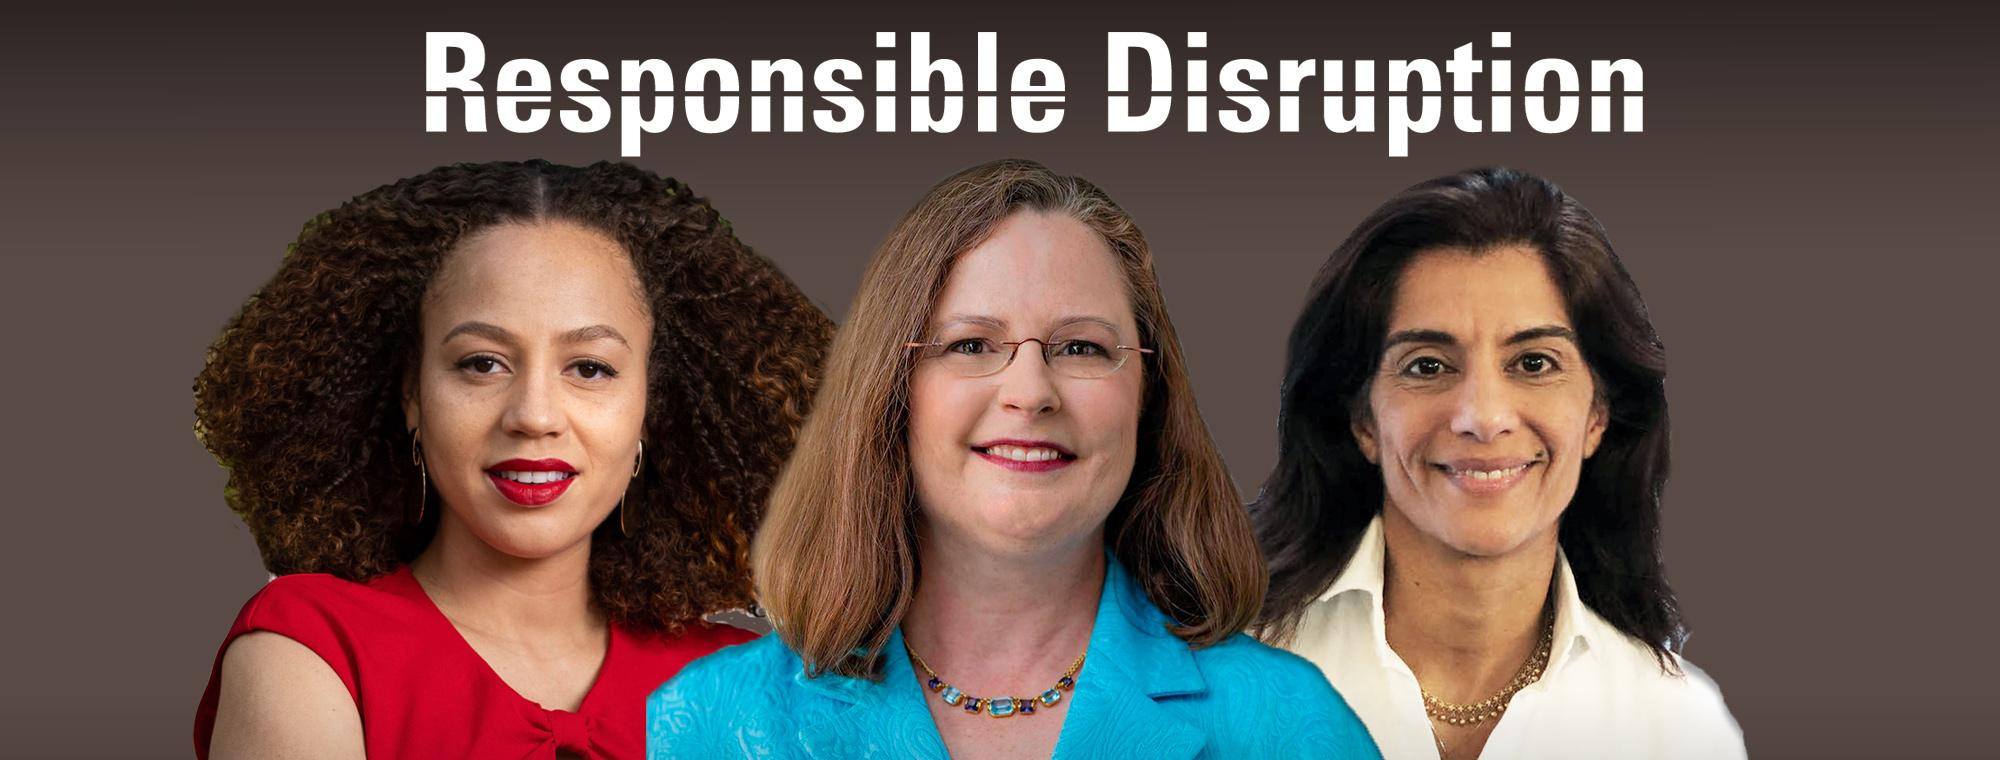 Responsible Disruption (3 speakers)